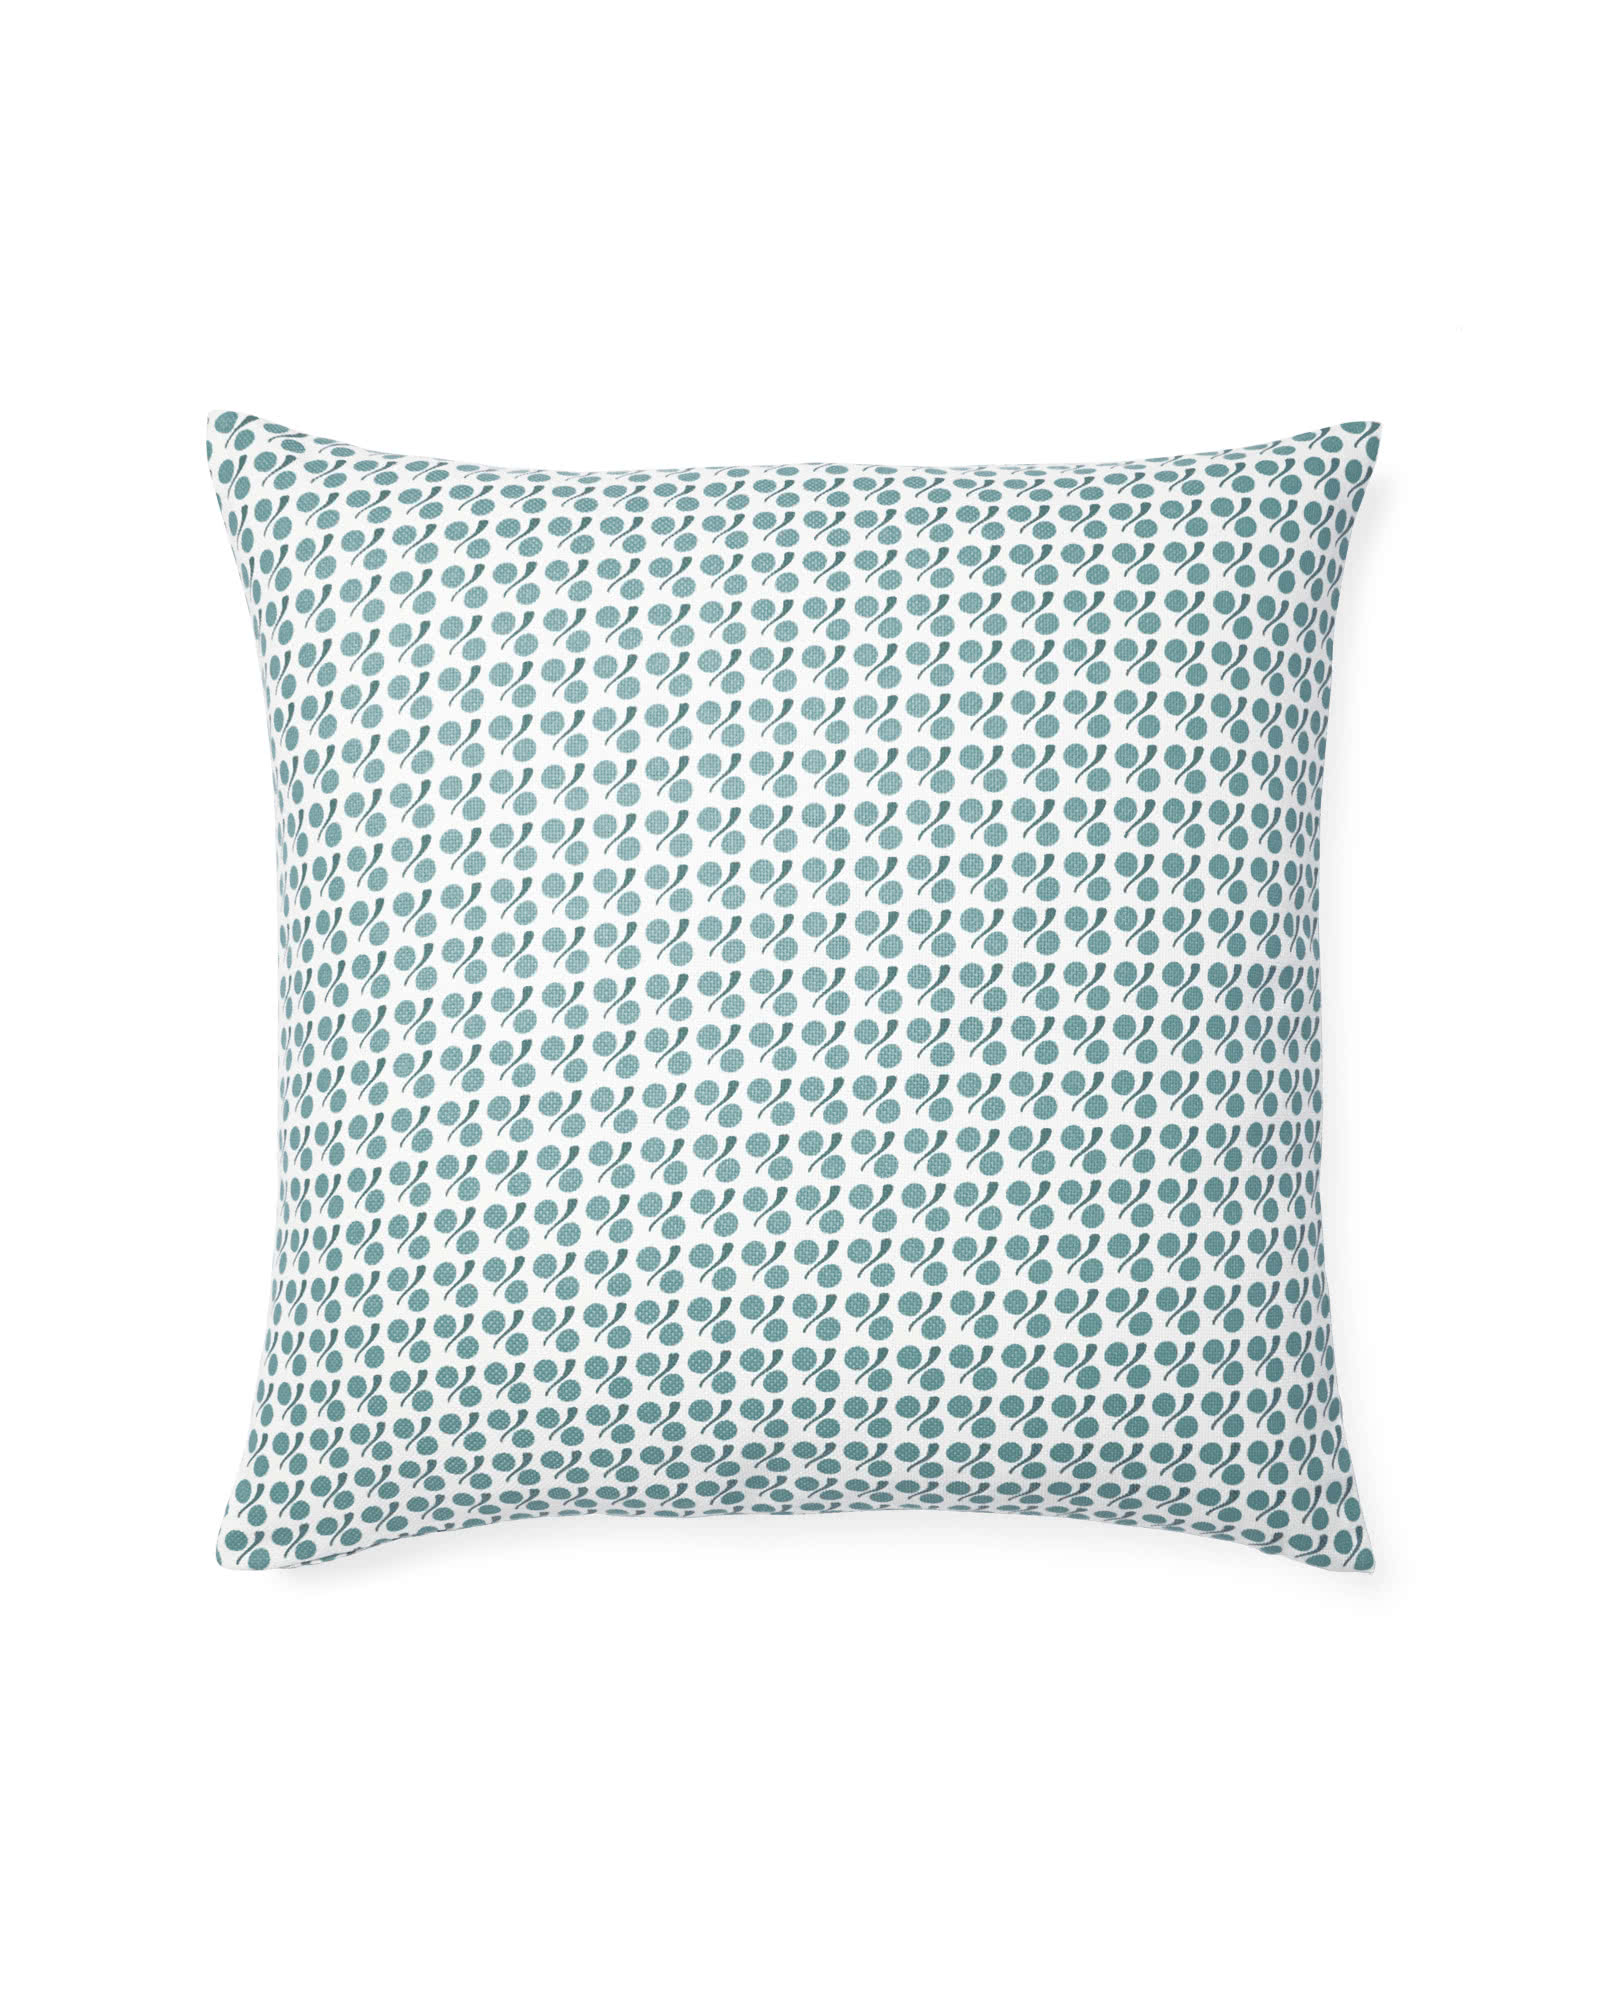 Del Ray Outdoor Pillow Cover,